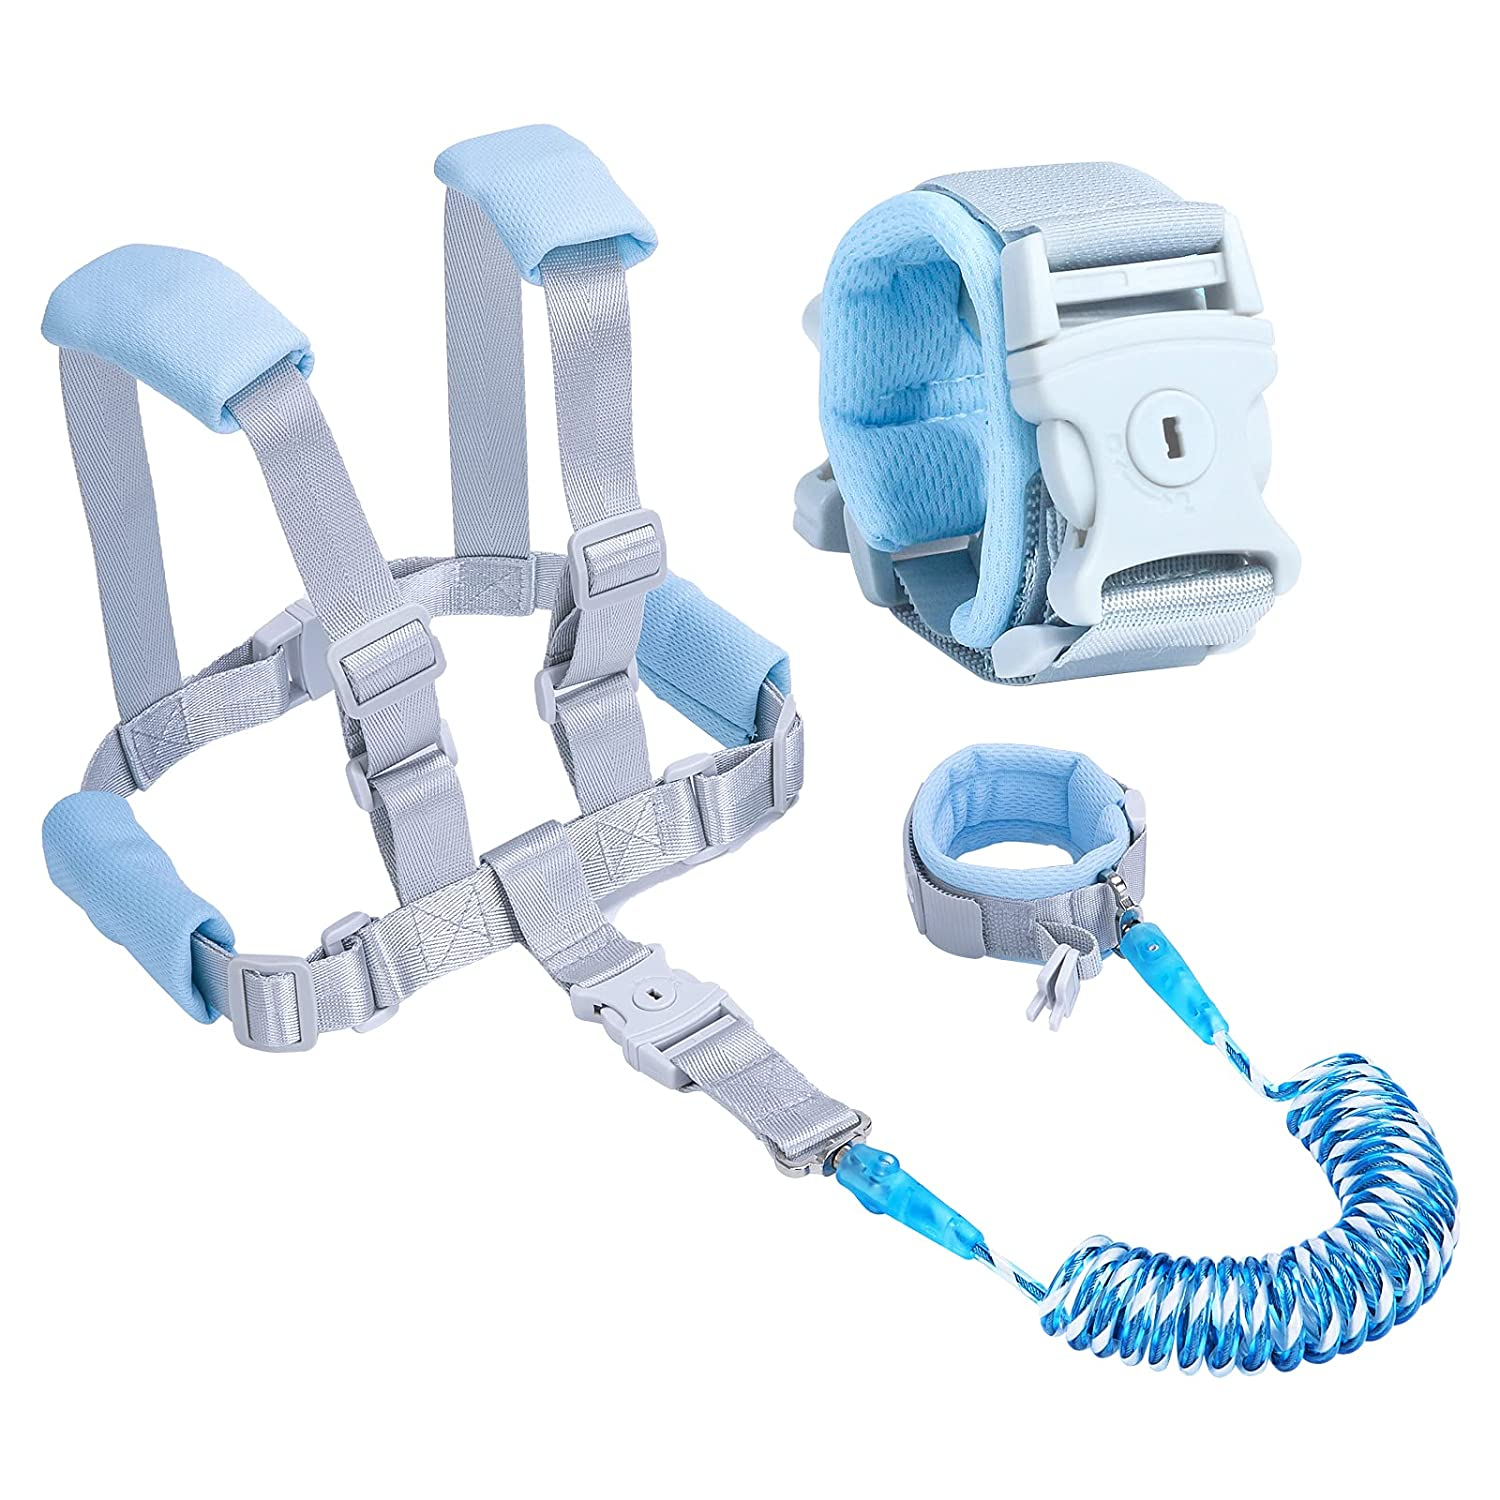 Toddler Leash - Anti Lost Wrist Link Safety for Toddlers (Blue)